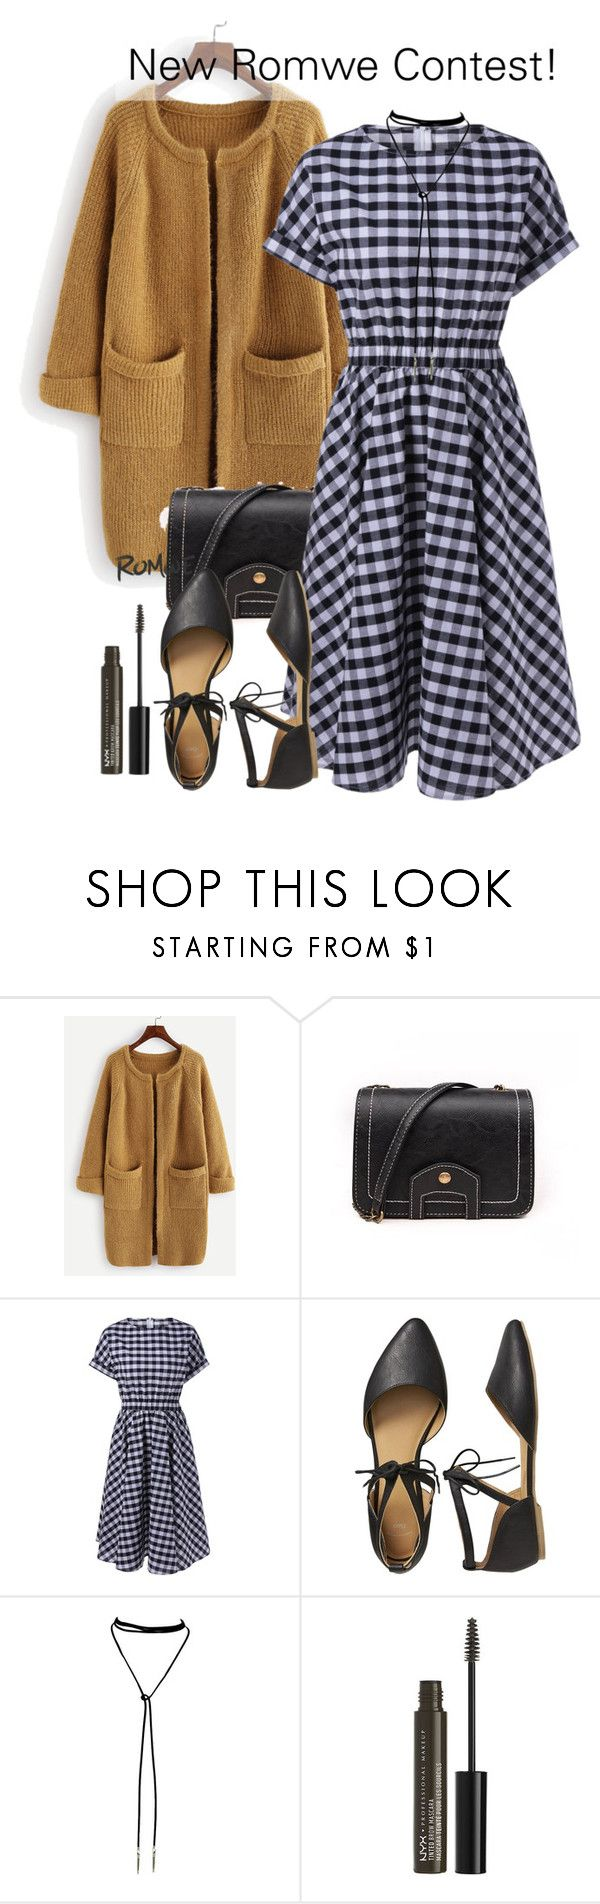 """""""New Romwe Contest in My Group!"""" by dora04 ❤ liked on Polyvore featuring Gap and NYX"""